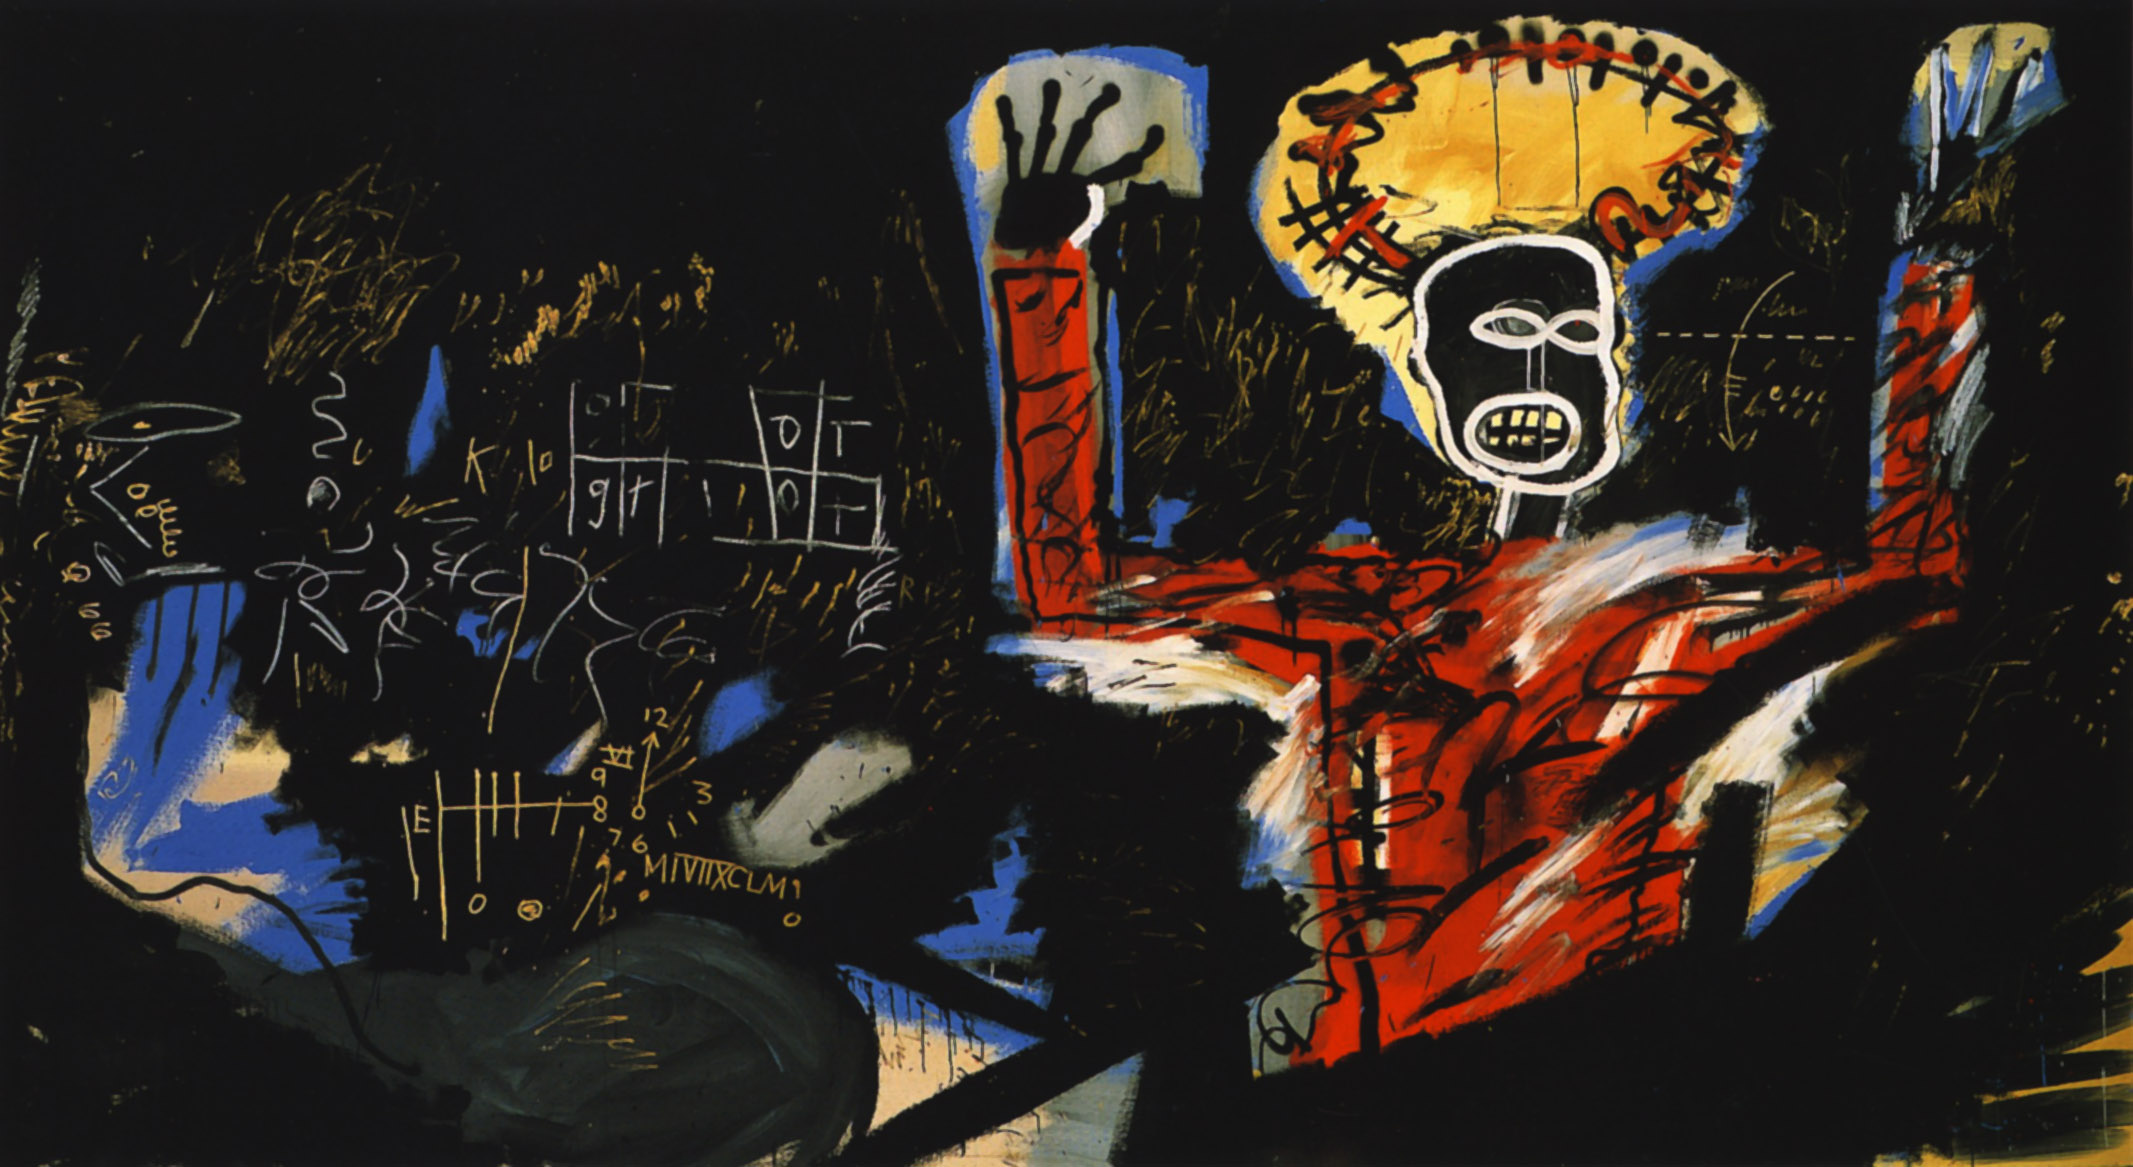 http://uploads8.wikipaintings.org/images/jean-michel-basquiat/profit-i.jpg